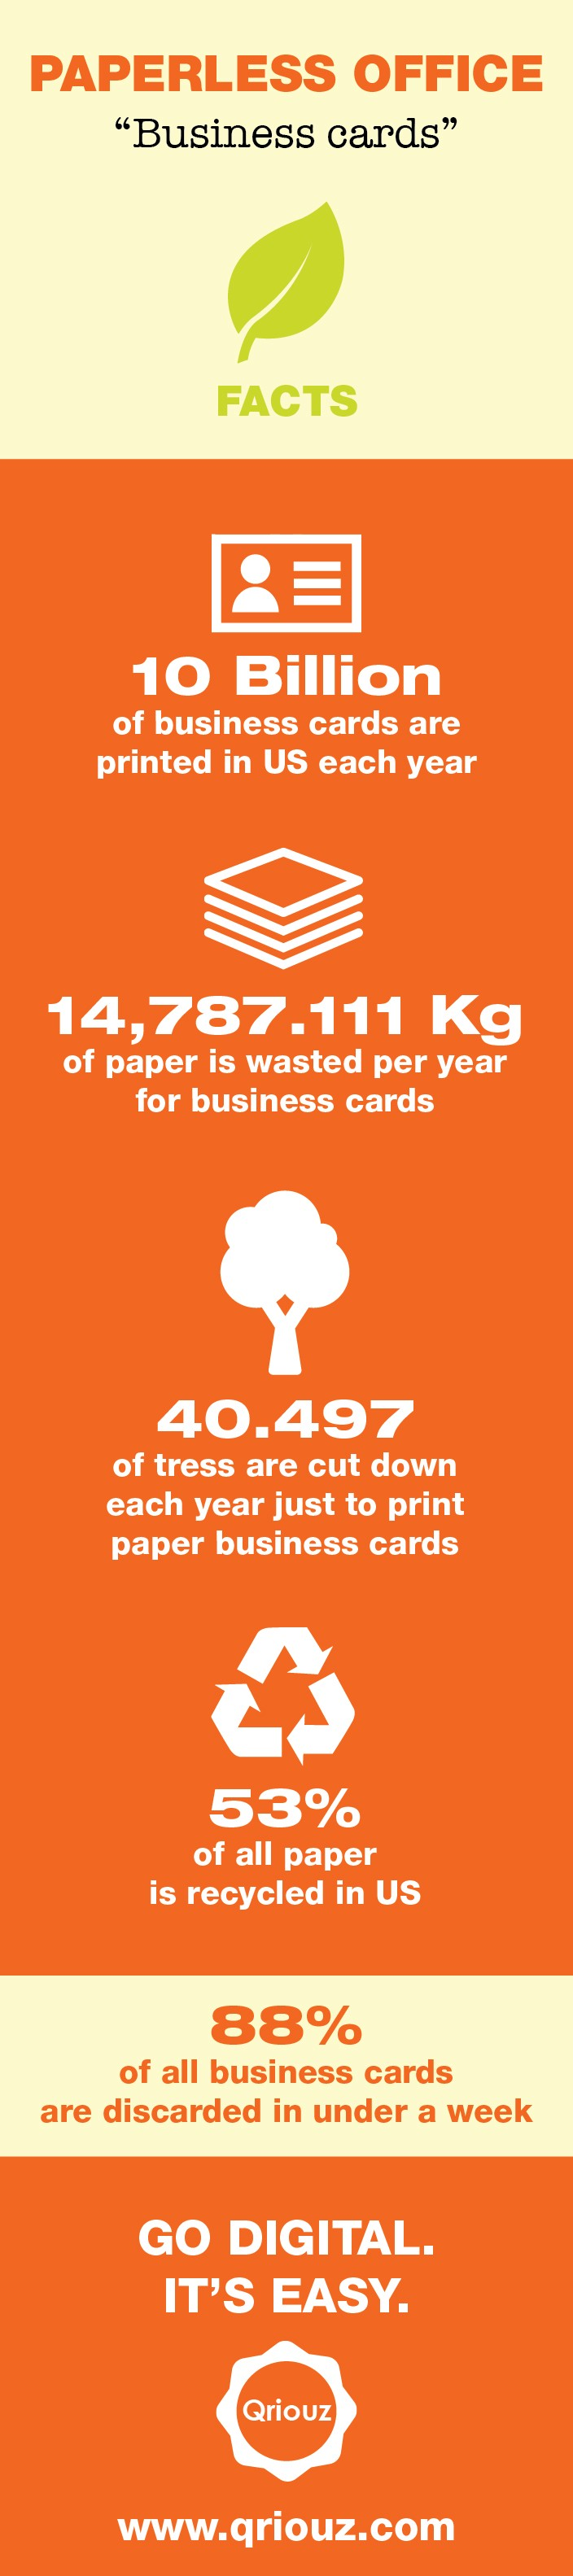 Why isn\'t the business card part of the paperless office yet?